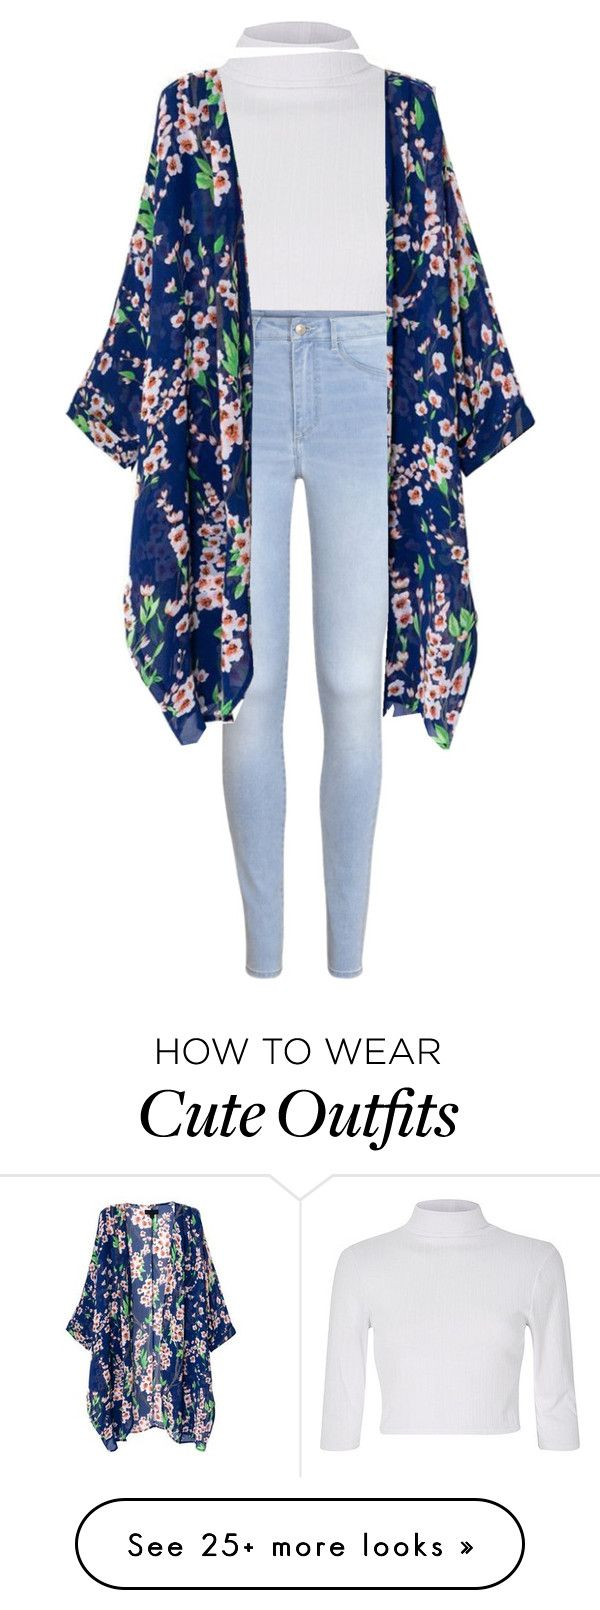 Cute yet simple outfit by iluvselenagomezz on Polyvore featuring HM